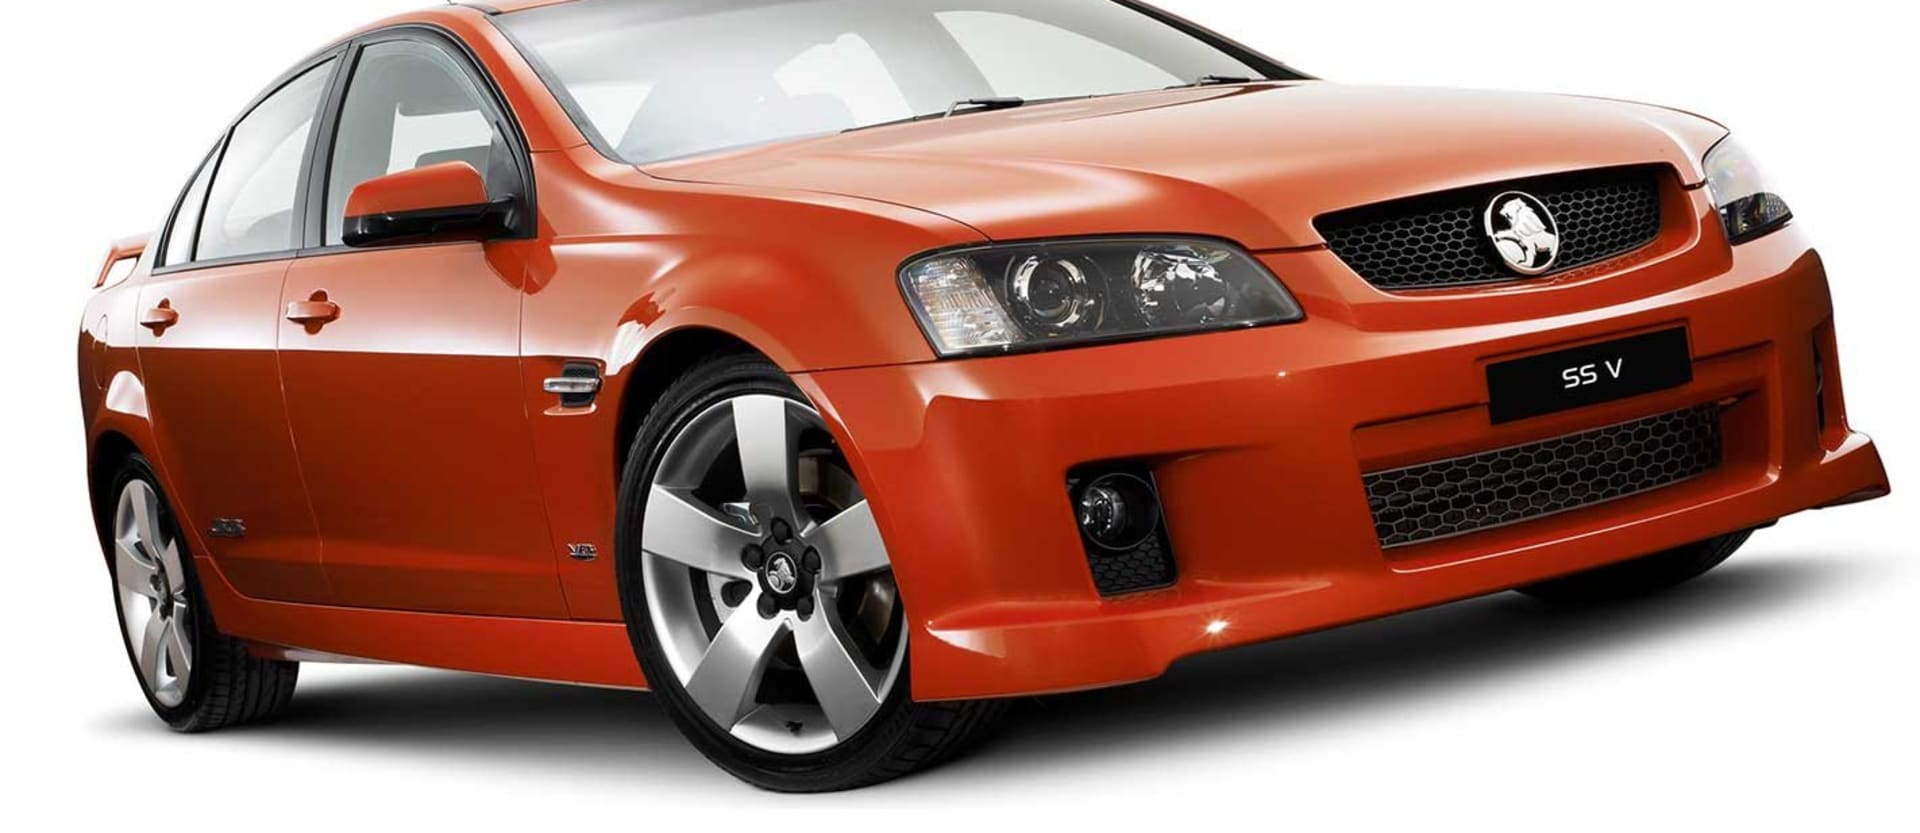 Holden VE Commodore SS V used car buyers guide